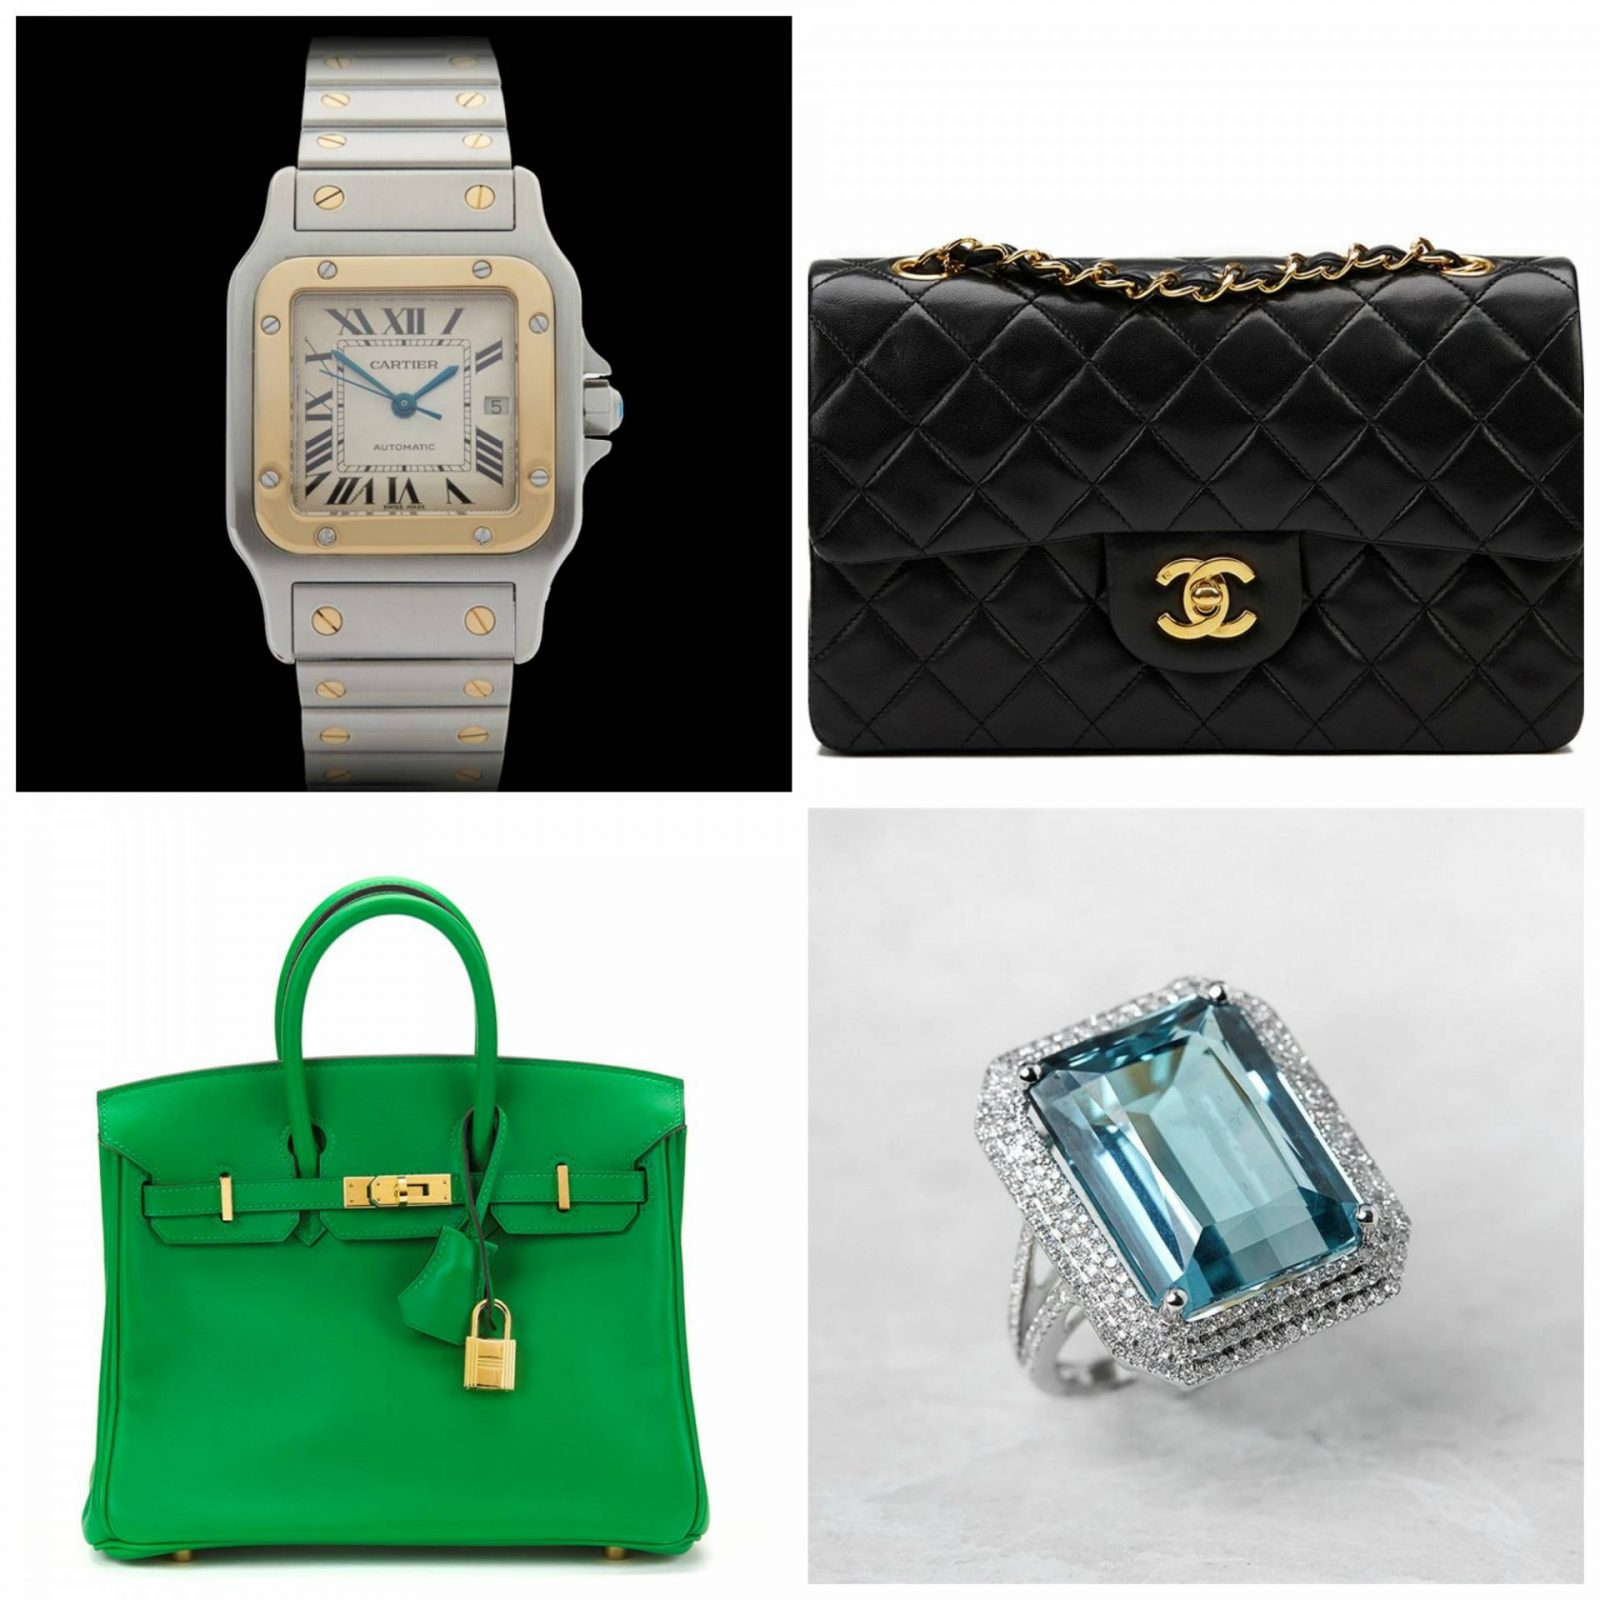 Pre-loved Luxury Goods at Xupes Cartier watch, green Hermes Birkin bag, Chanel quilted bag, diamond and aquamarine cocktail ring